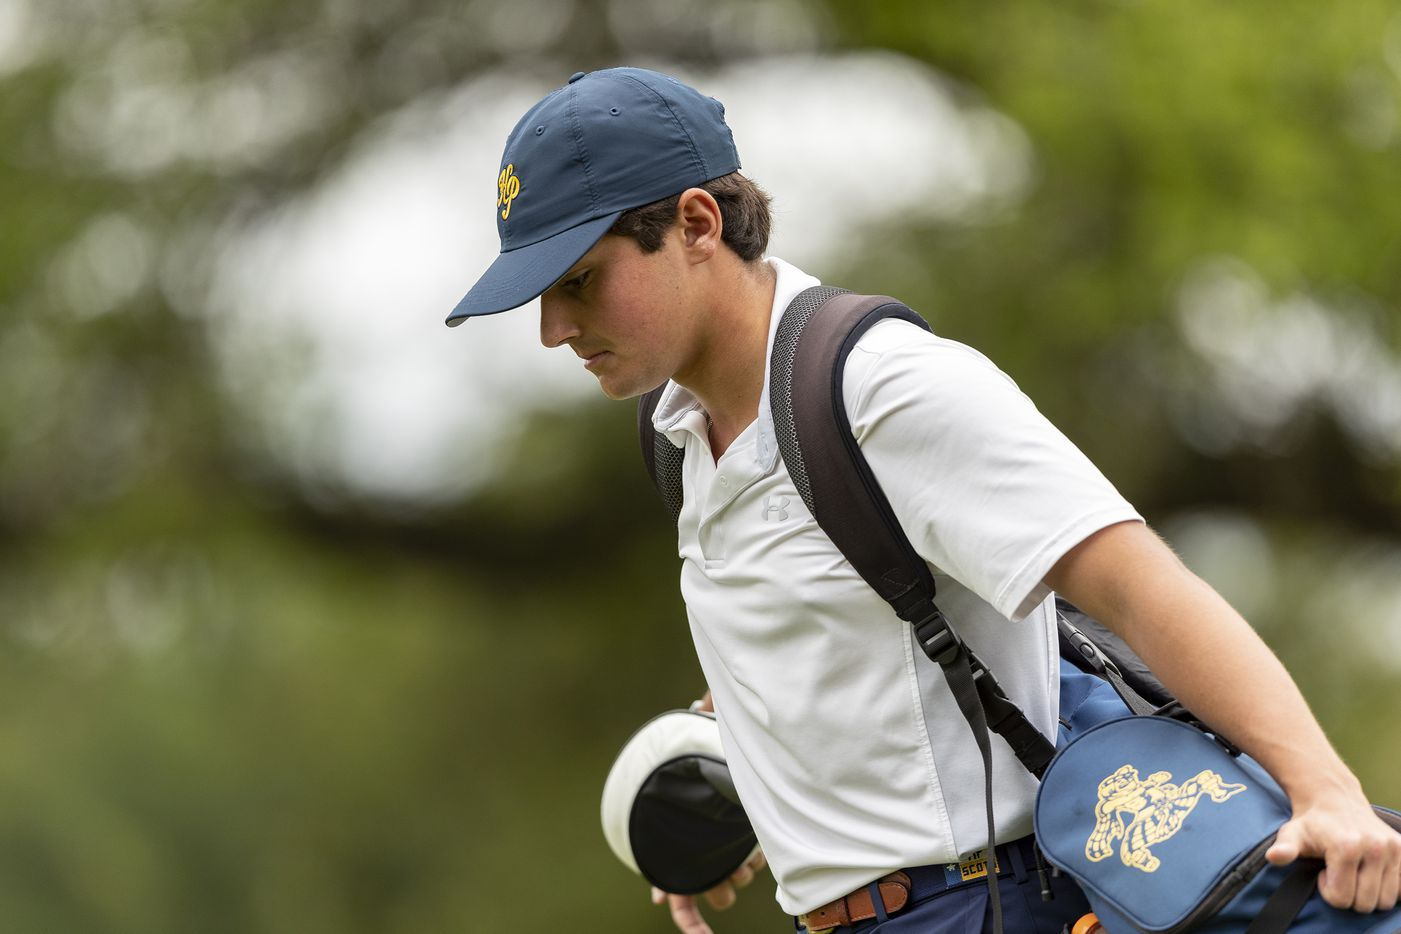 Highland ParkÕs Hudson Weibel walks to his ball on the 11th hole during round 1 of the UIL Class 5A boys golf tournament in Georgetown, Monday, May 17, 2021. (Stephen Spillman/Special Contributor)